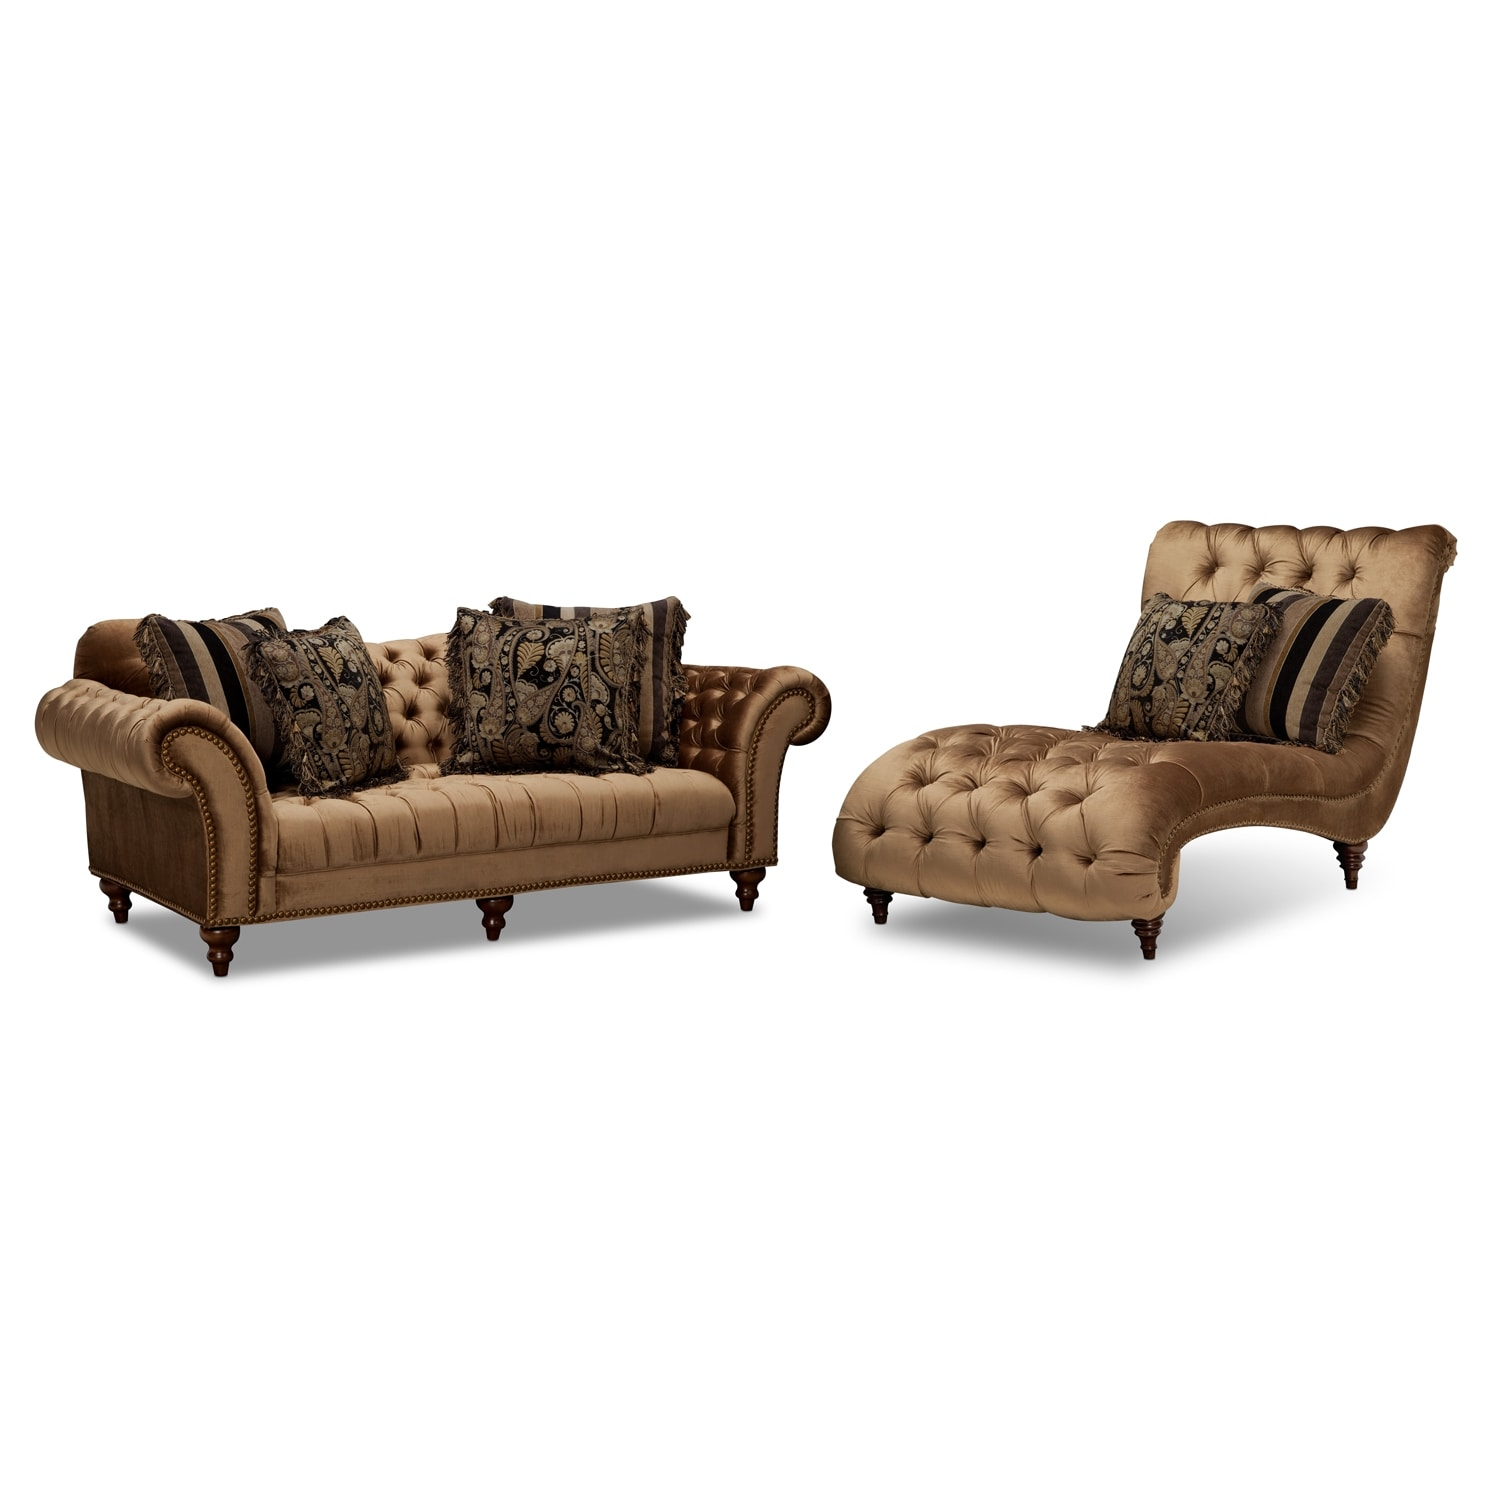 Brittney sofa and chaise set bronze american signature for Chaise and sofa